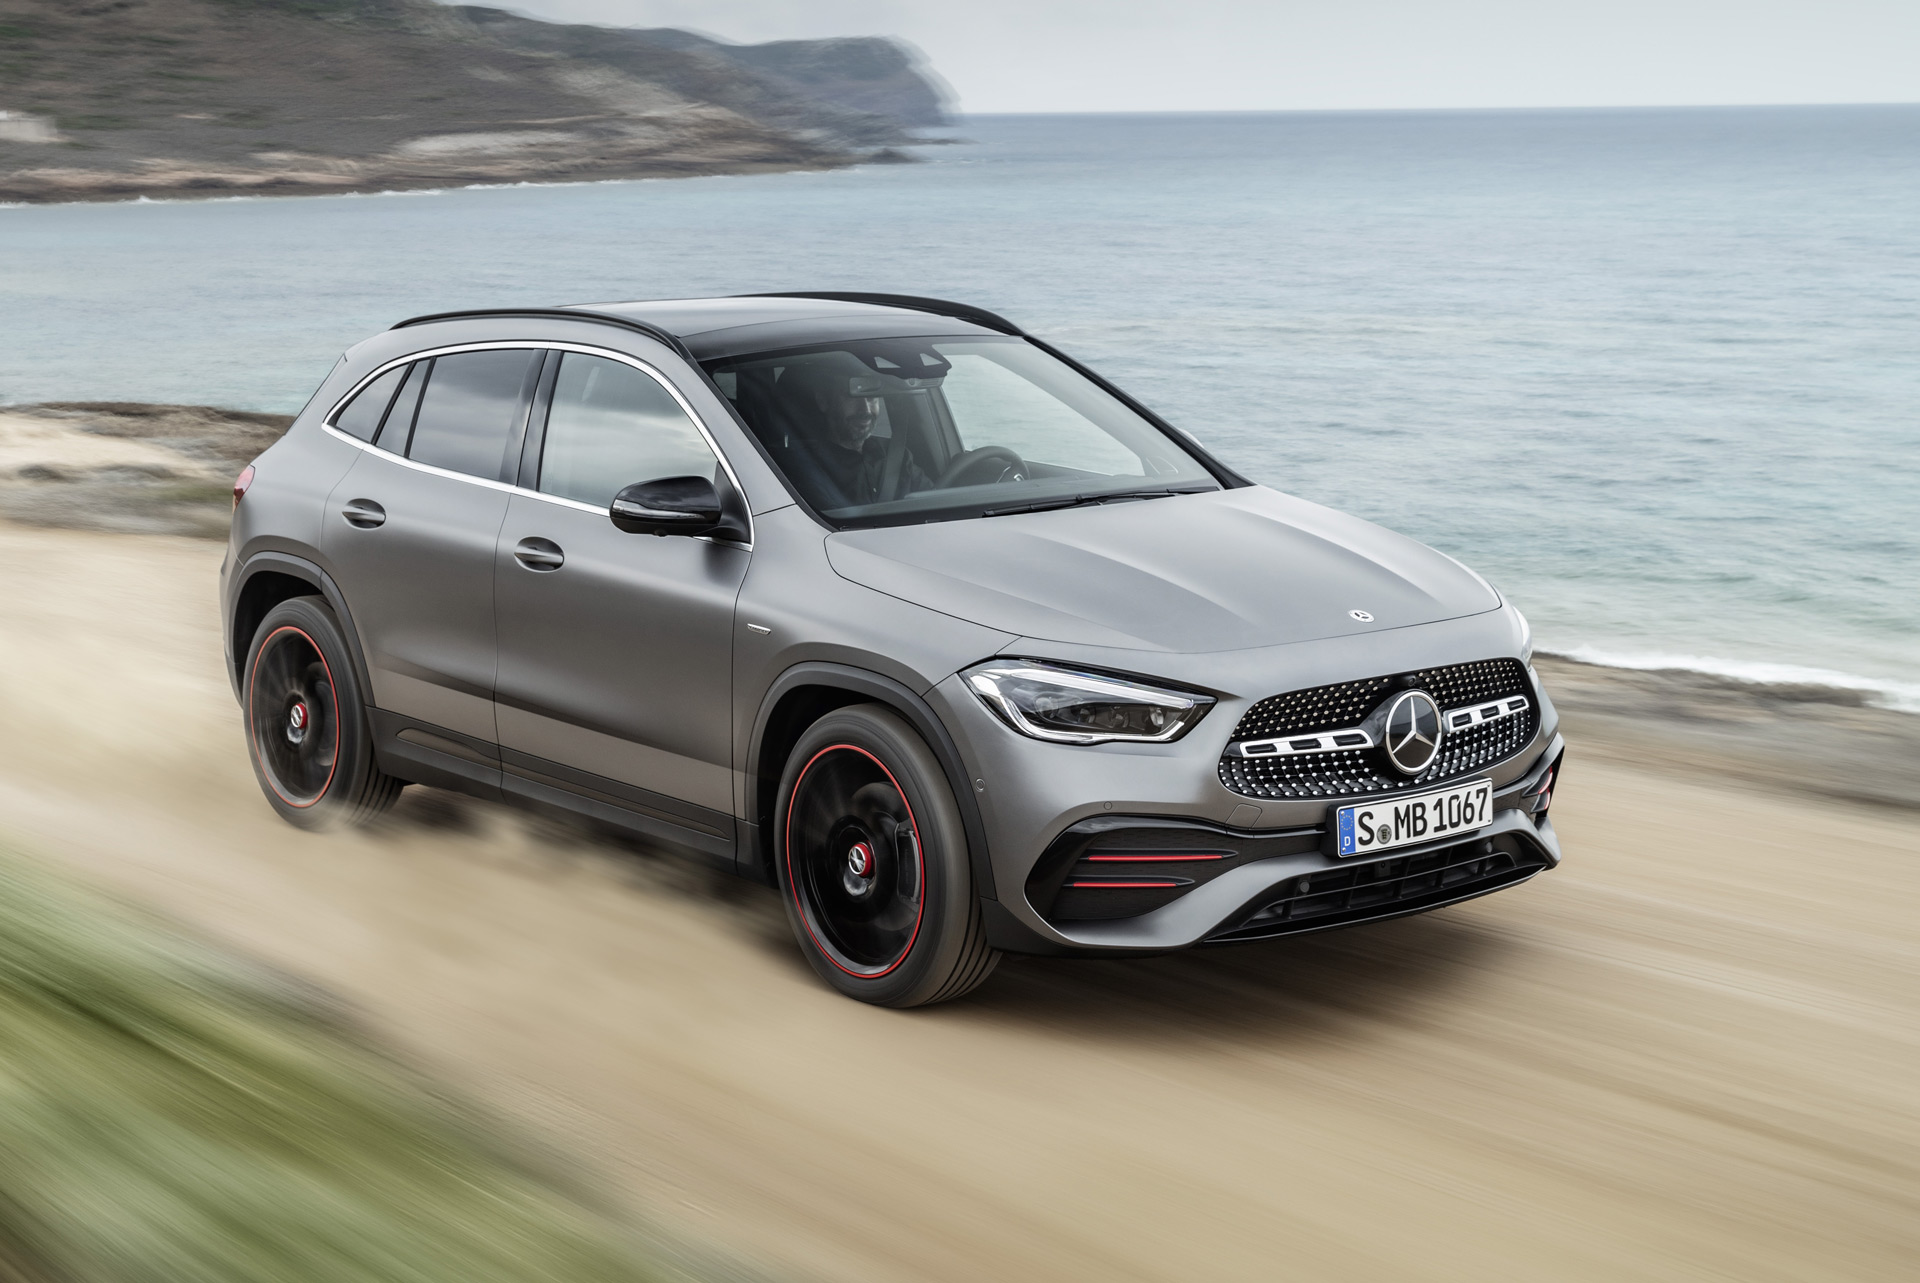 New 2021 Mercedes-Benz GLA250 crossover grows in size and ...